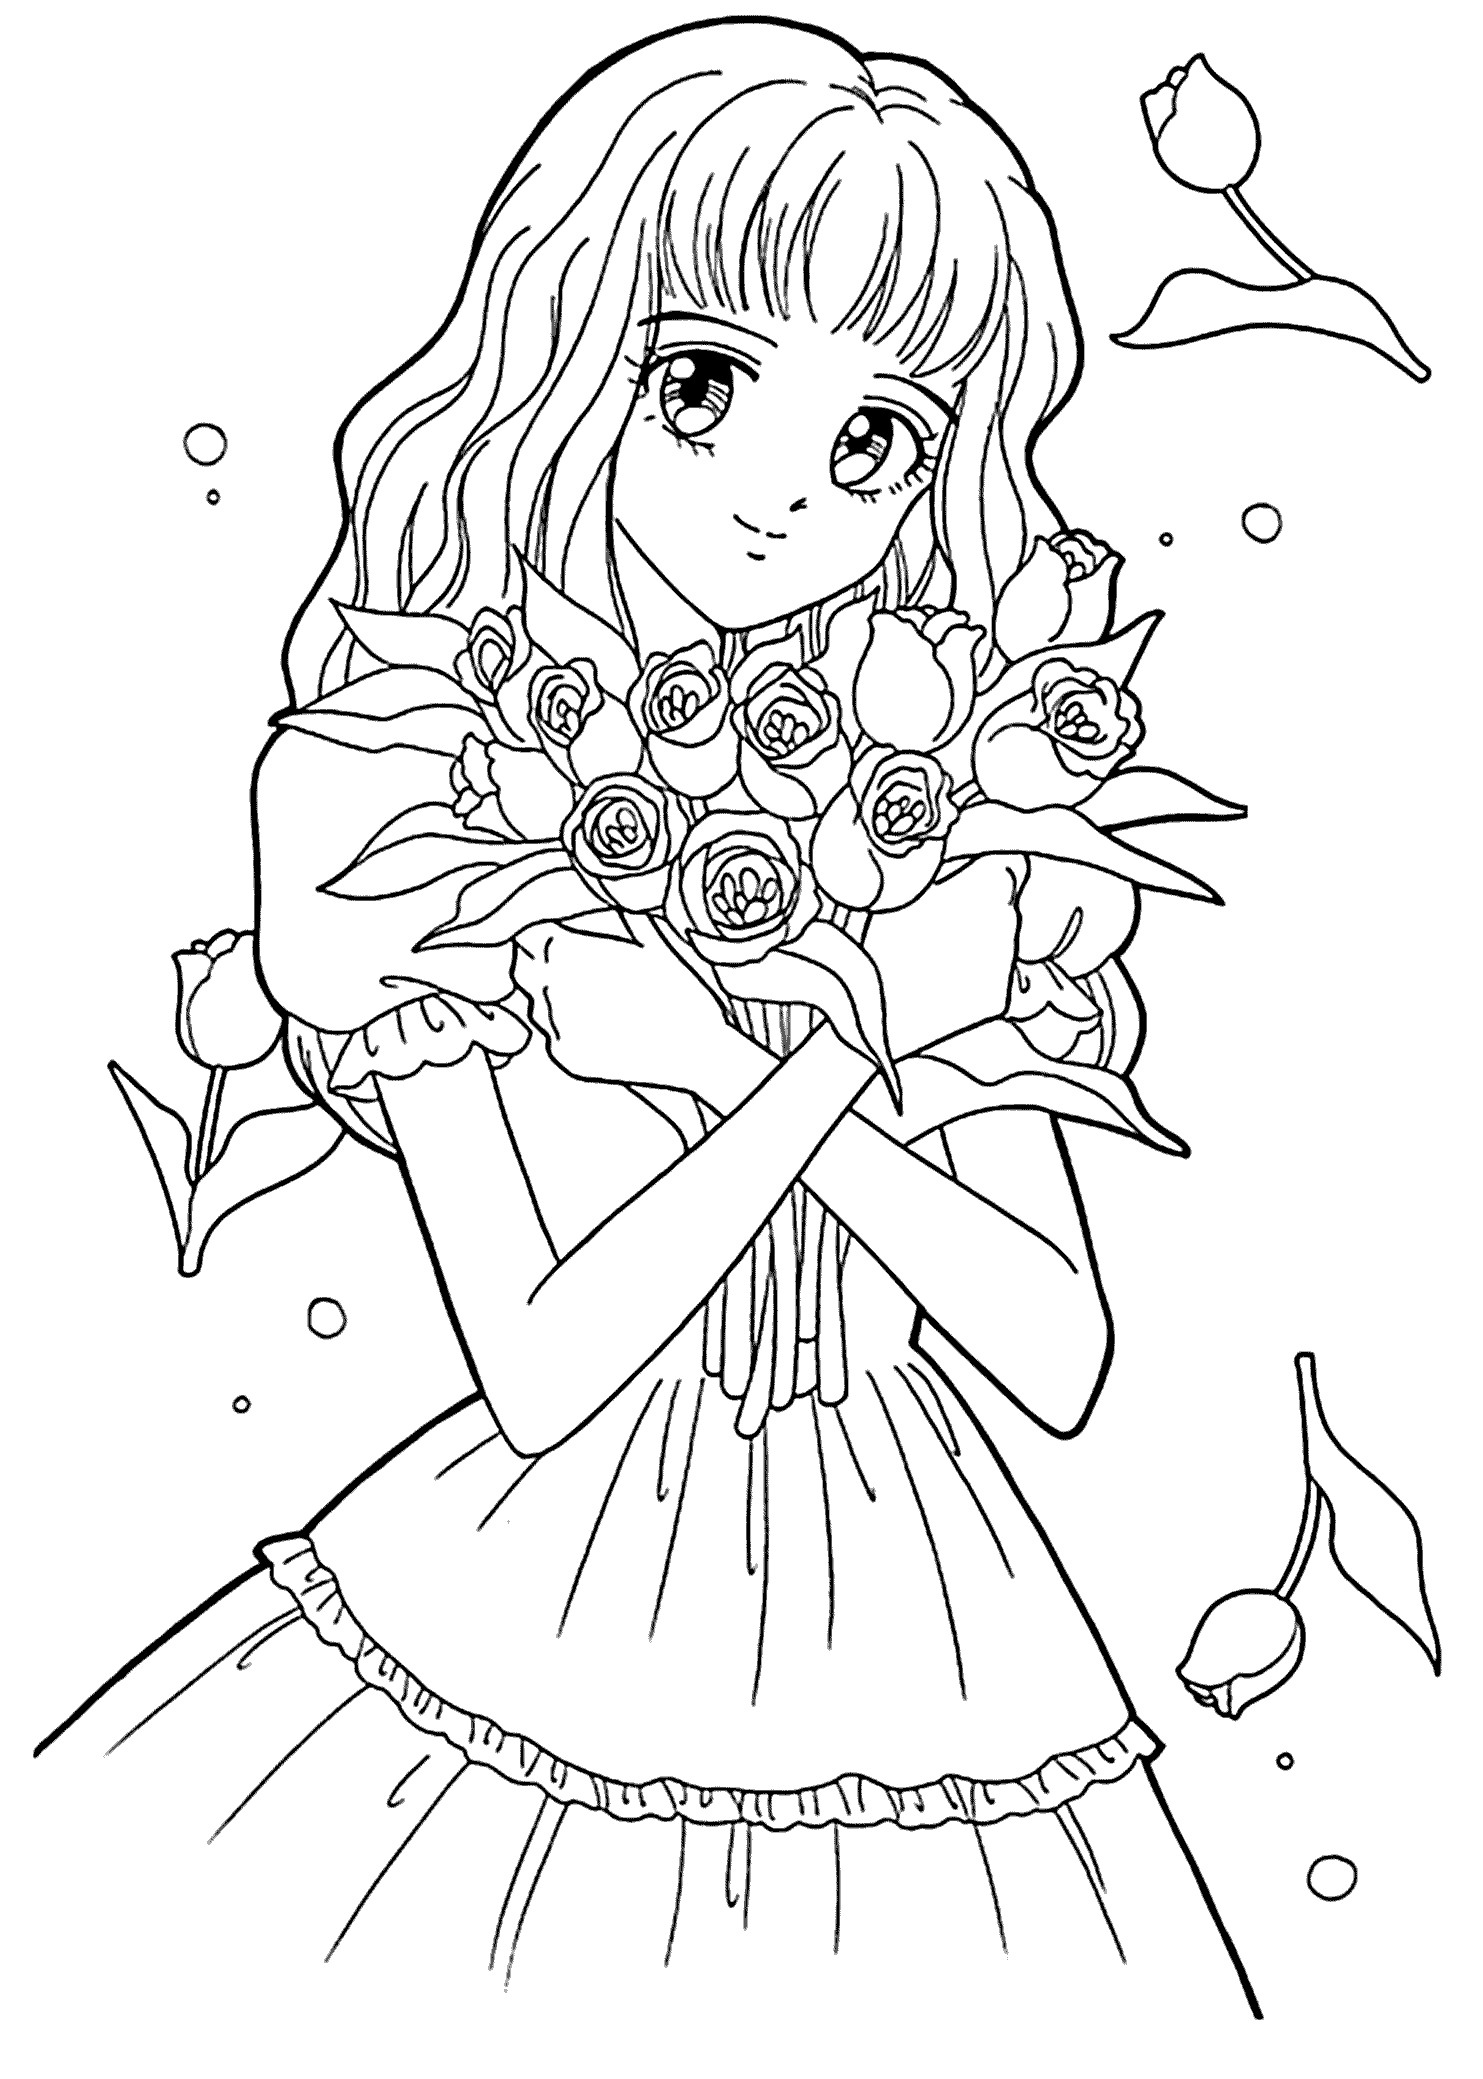 coloring pages for girls designs detailed coloring pages for girls at getcoloringscom girls coloring designs pages for